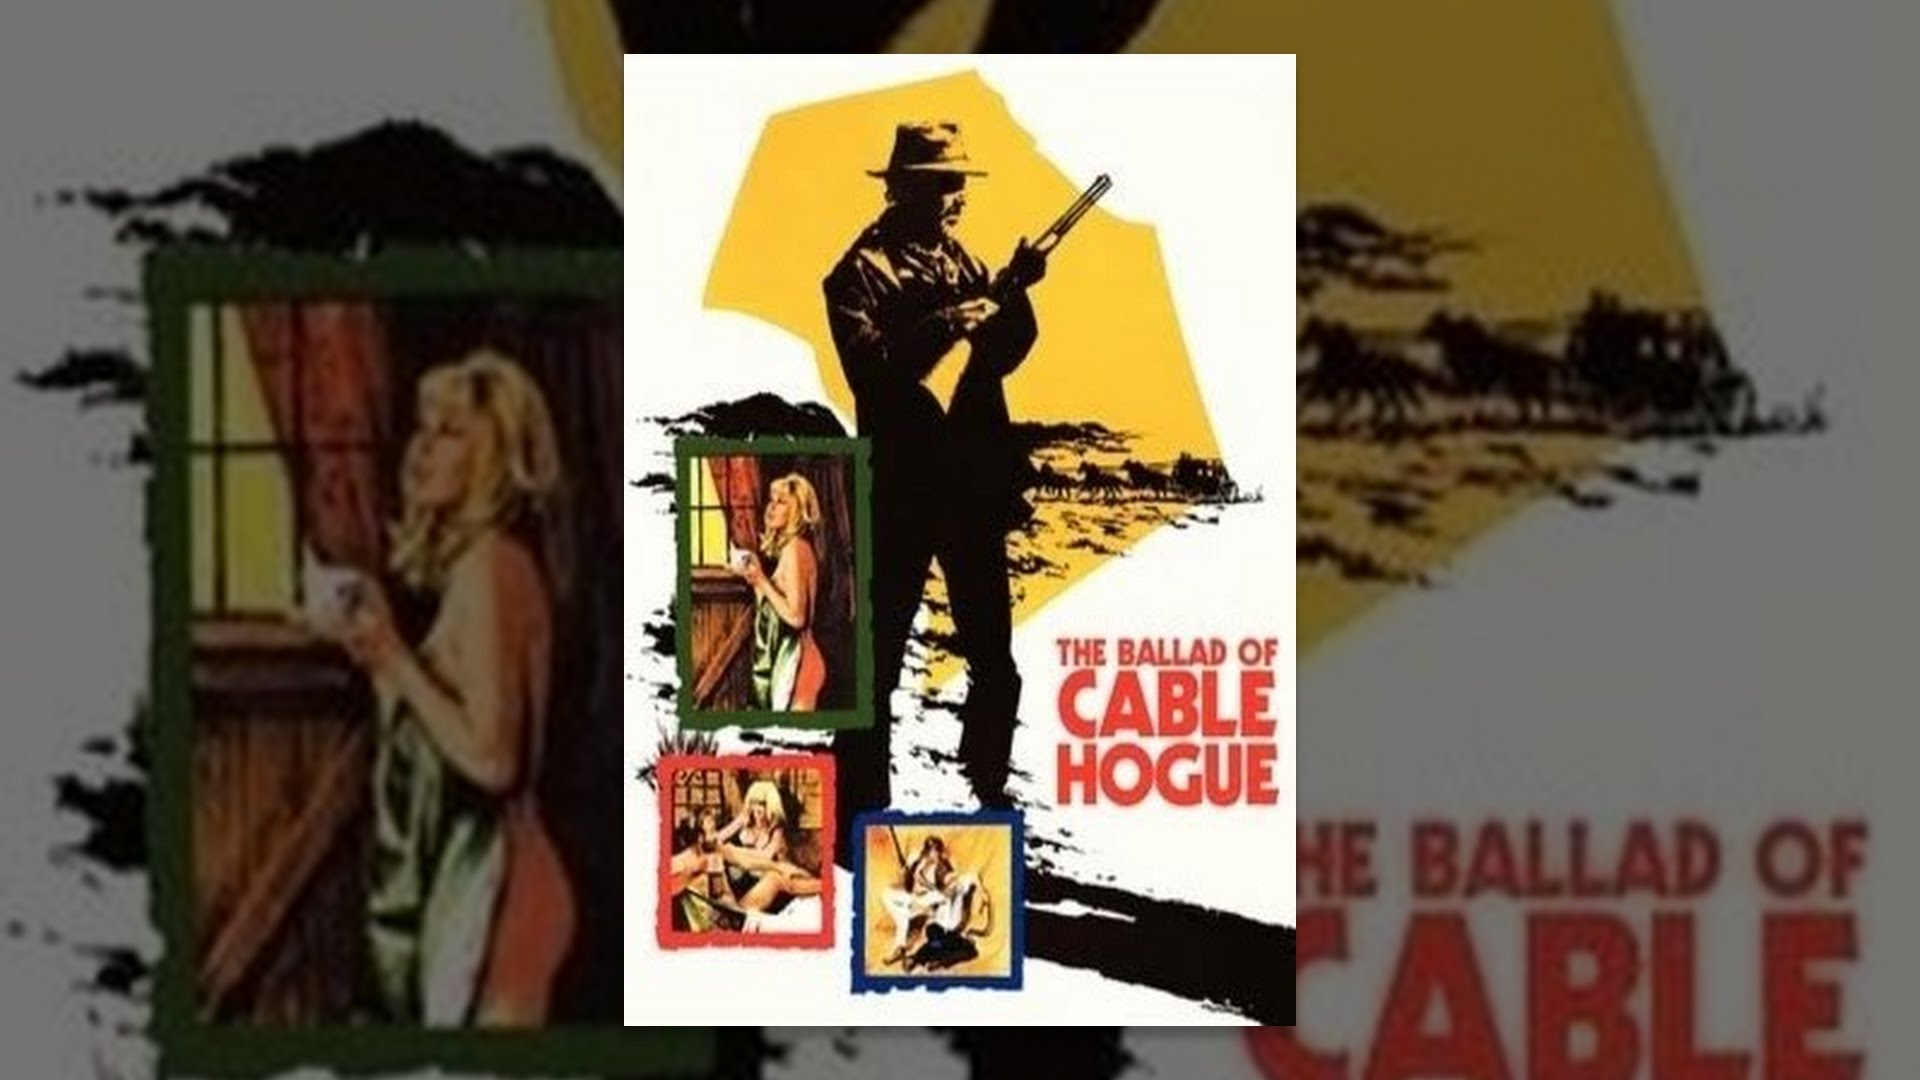 Download Ballad of Cable Hogue